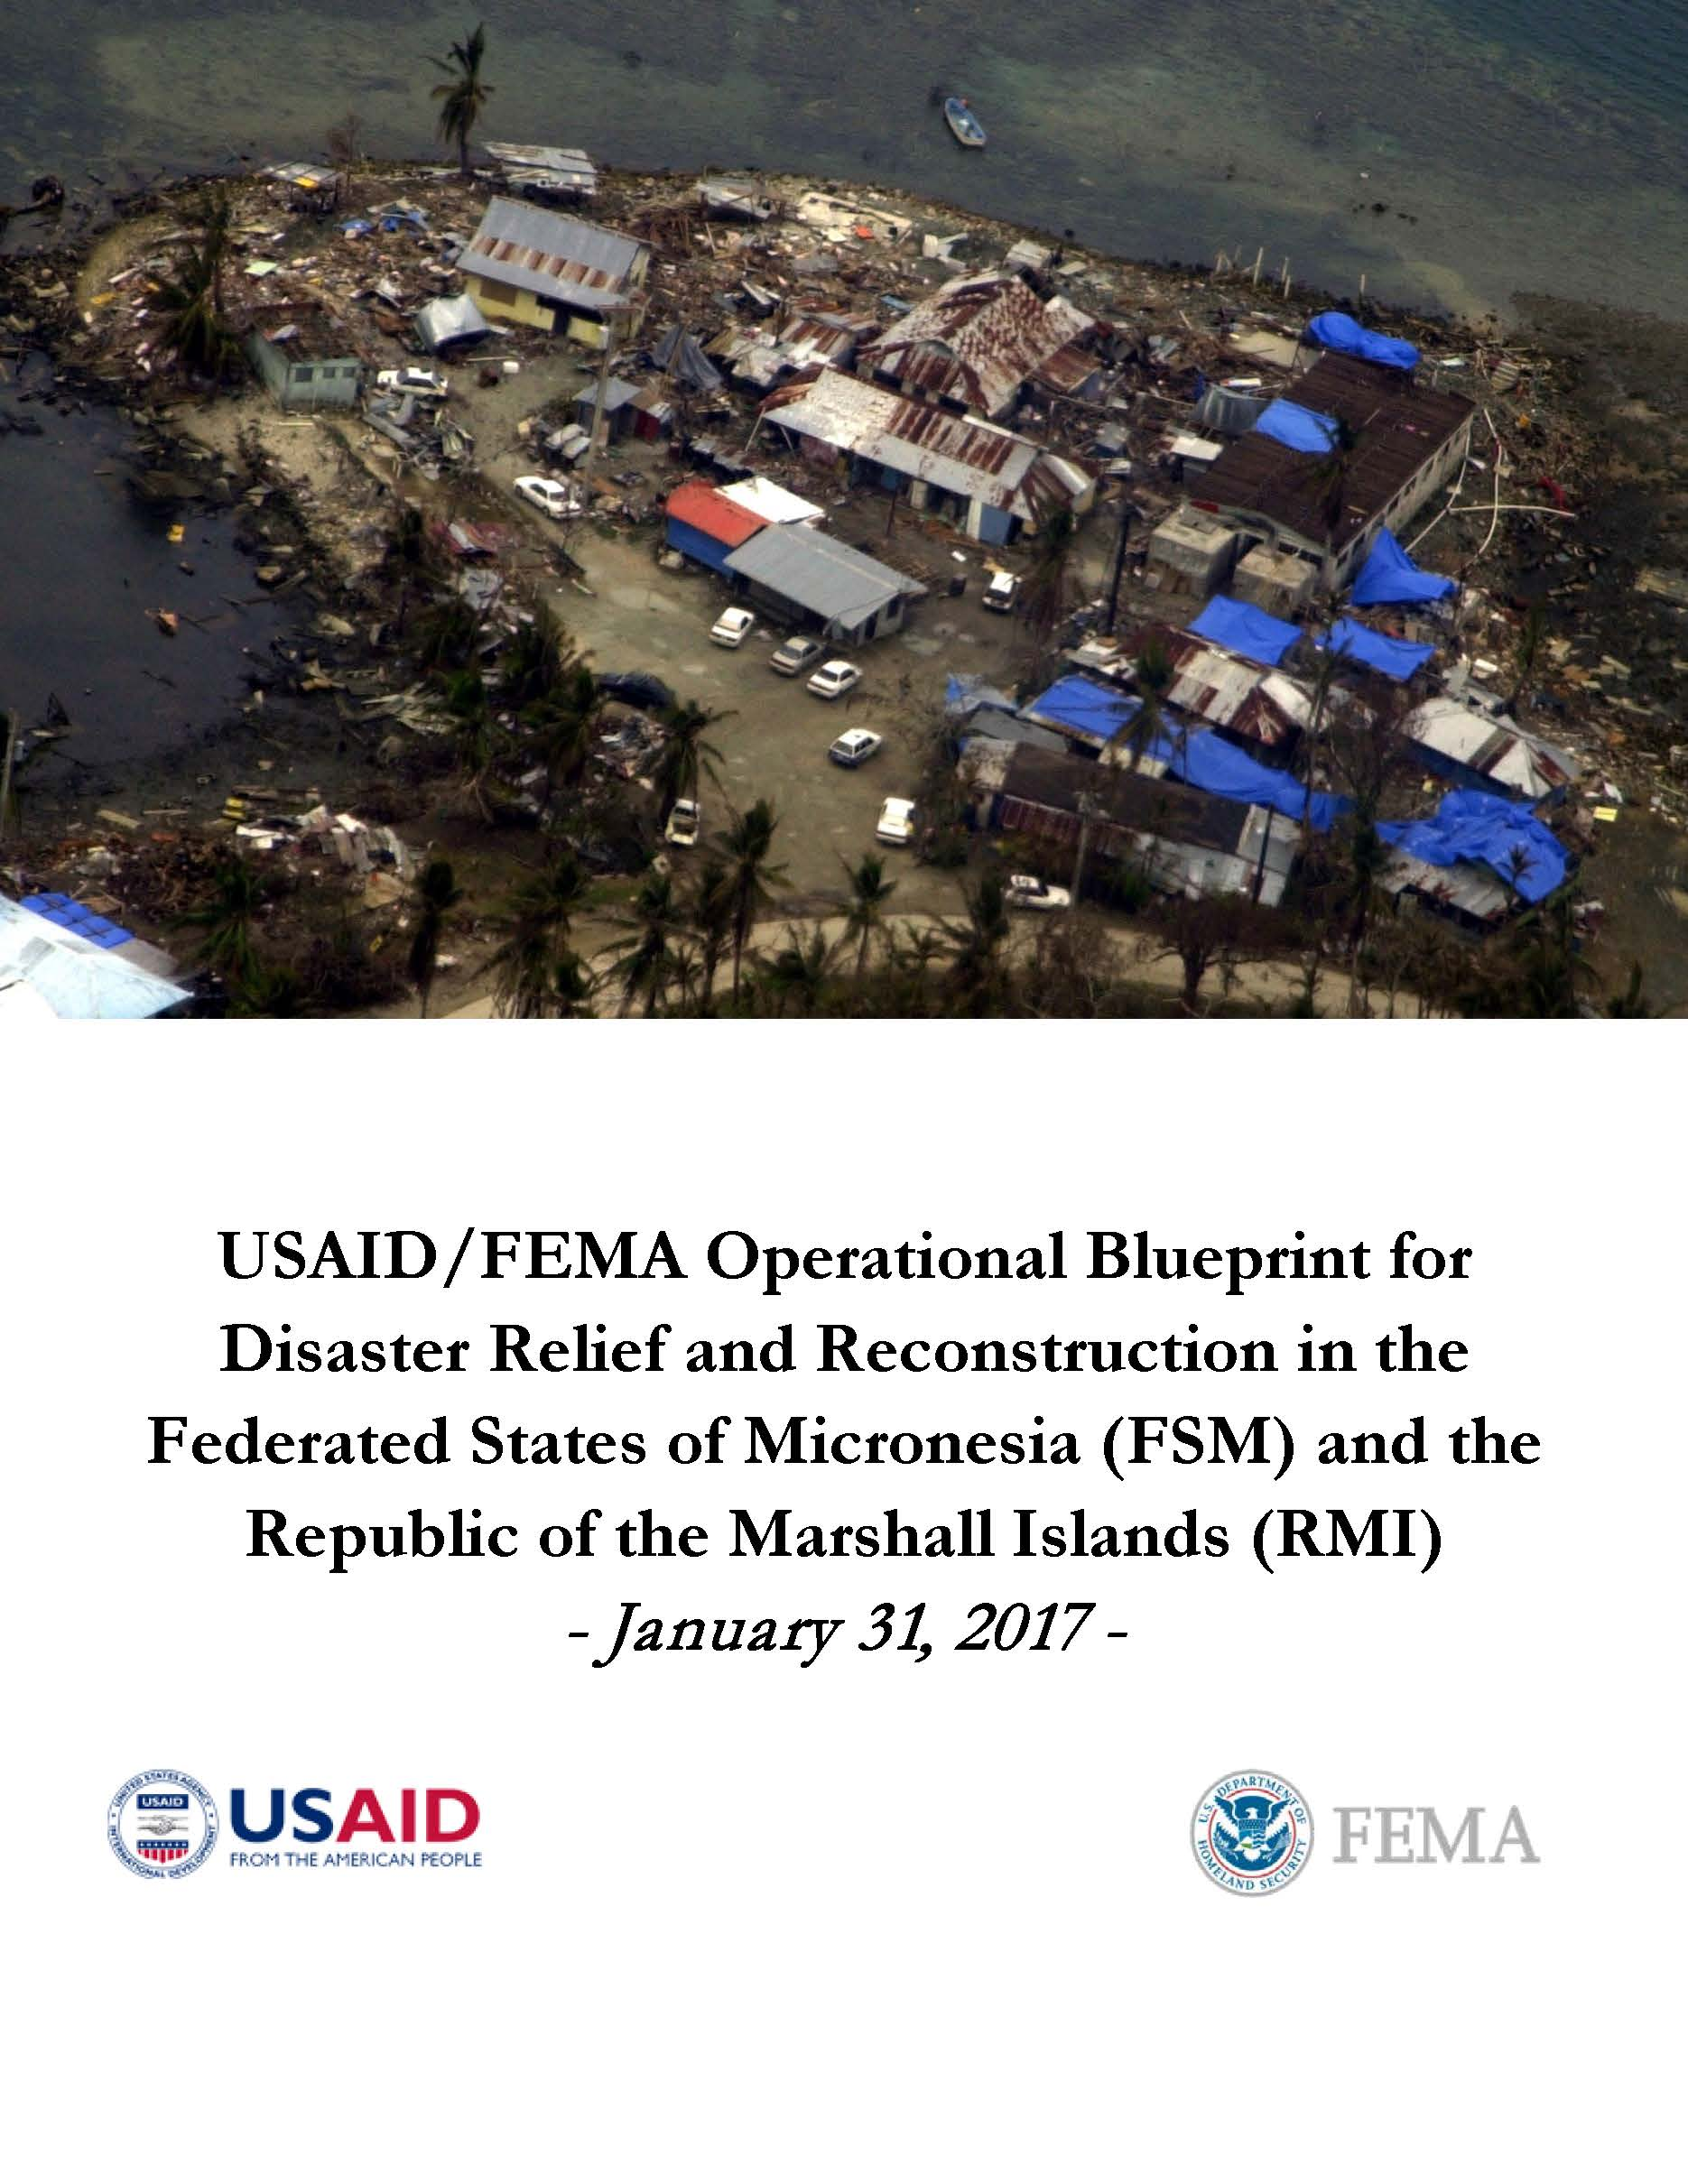 USAID/FEMA Operational Blueprint for Disaster Relief and Reconstruction in FSM and RMI